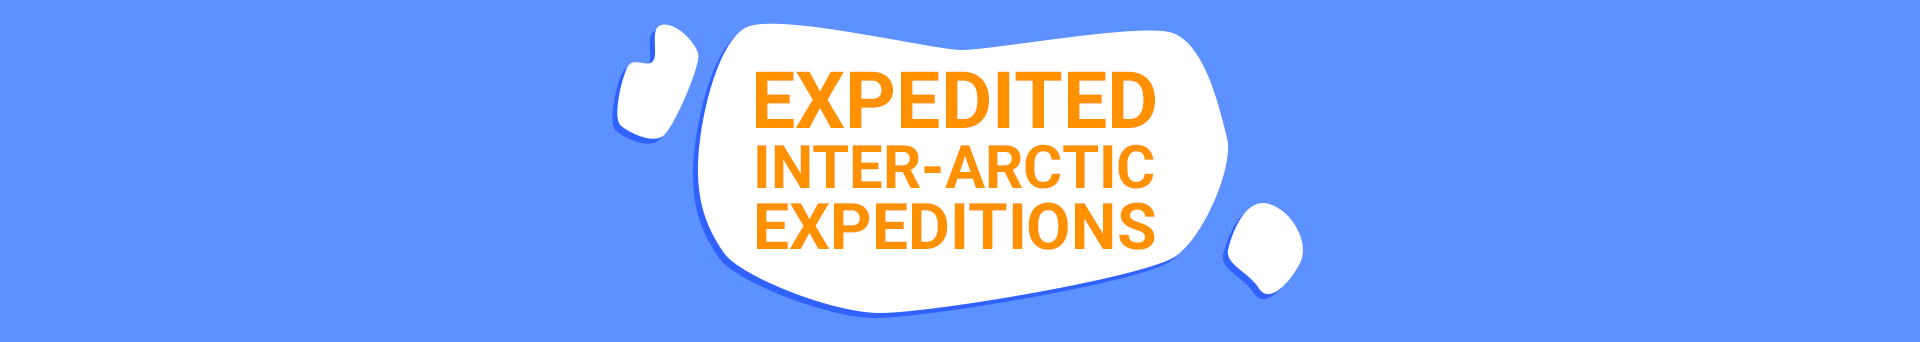 Expedited Inter-Arctic Expeditions